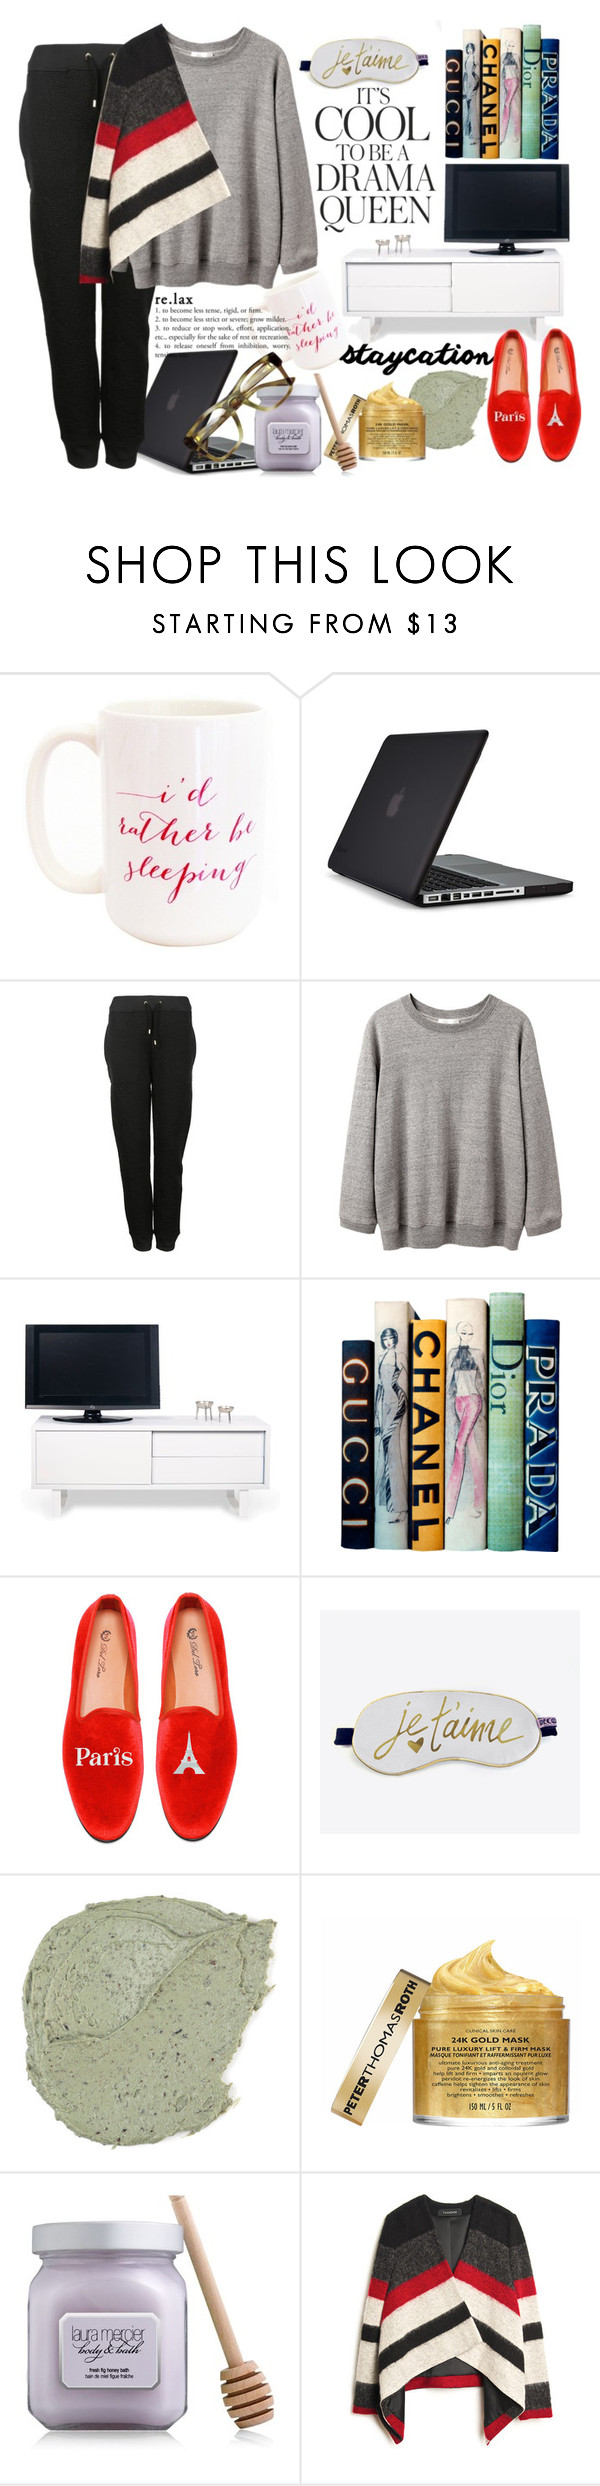 """""""The Last Two Weeks"""" by harperleo ❤ liked on Polyvore featuring Moon and Lola, Speck, Emma Watson, Moschino, La Garçonne Moderne, TemaHome, Motif Designs, Del Toro, Peter Thomas Roth and Laura Mercier"""